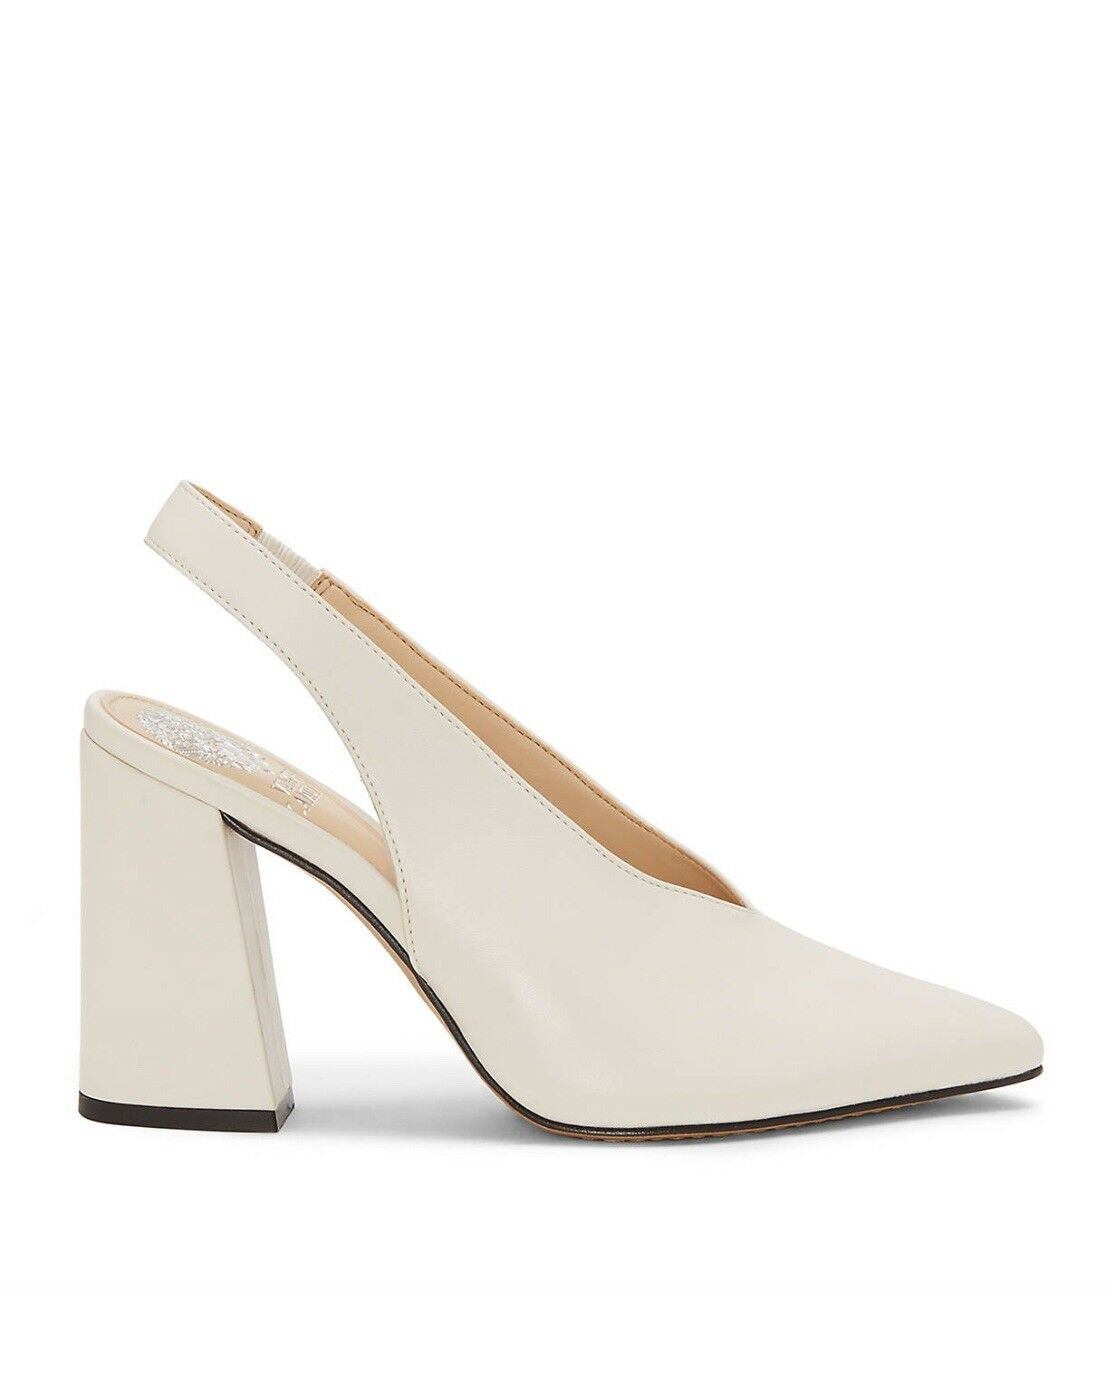 New shoes In In In Box Vince Comuto b0554b